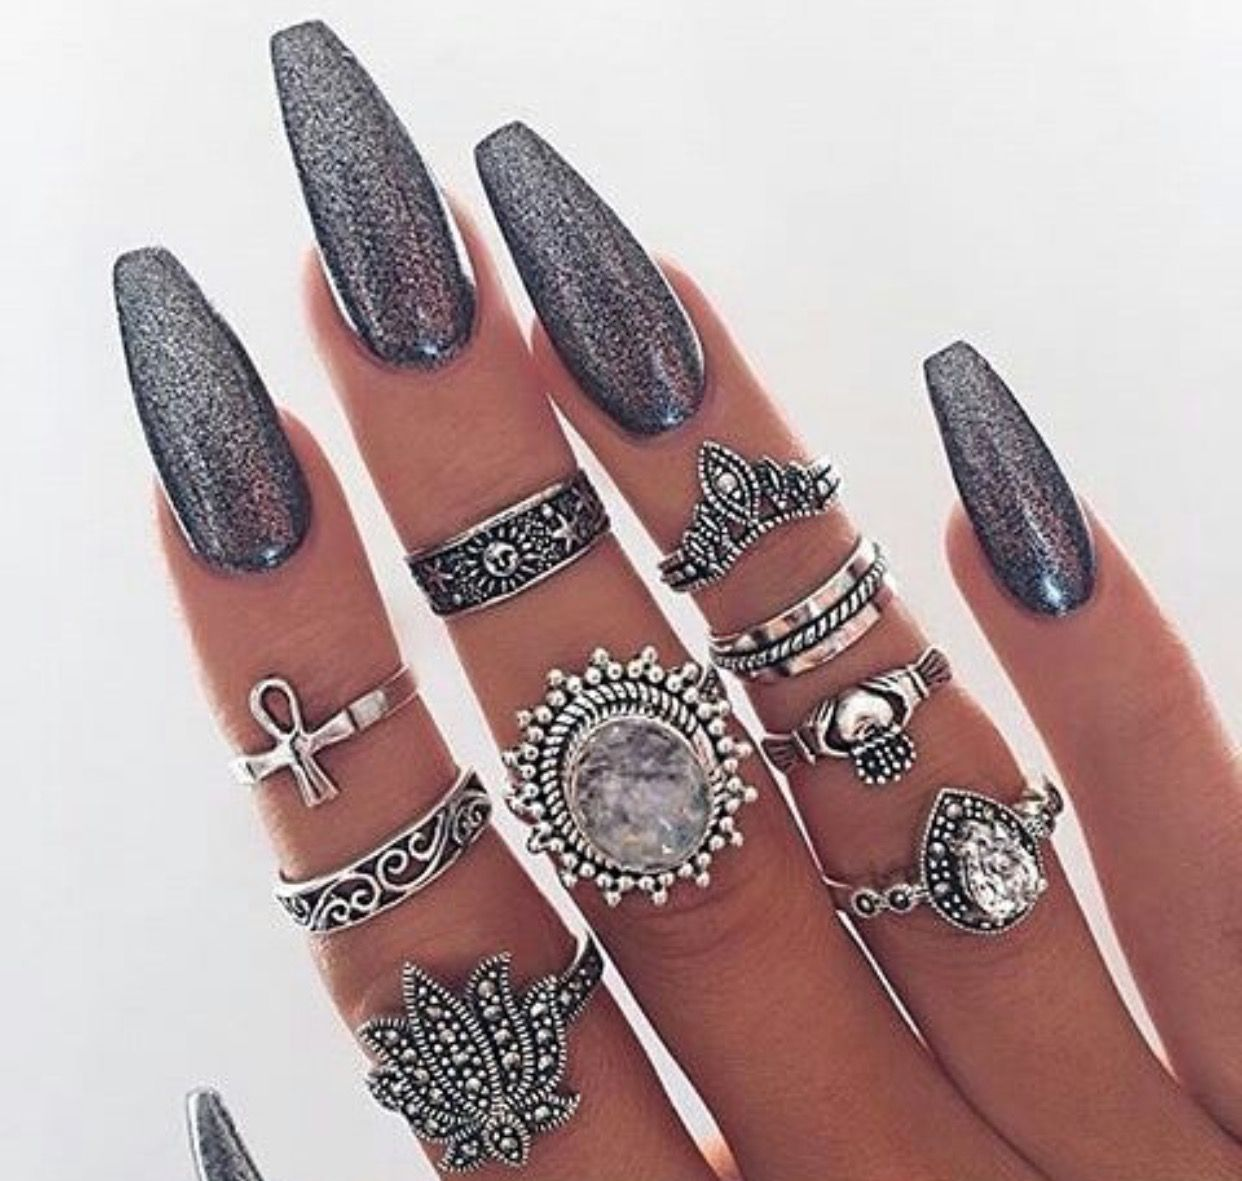 Black glitter coffin nails | Nails | Pinterest | Coffin nails, Black ...